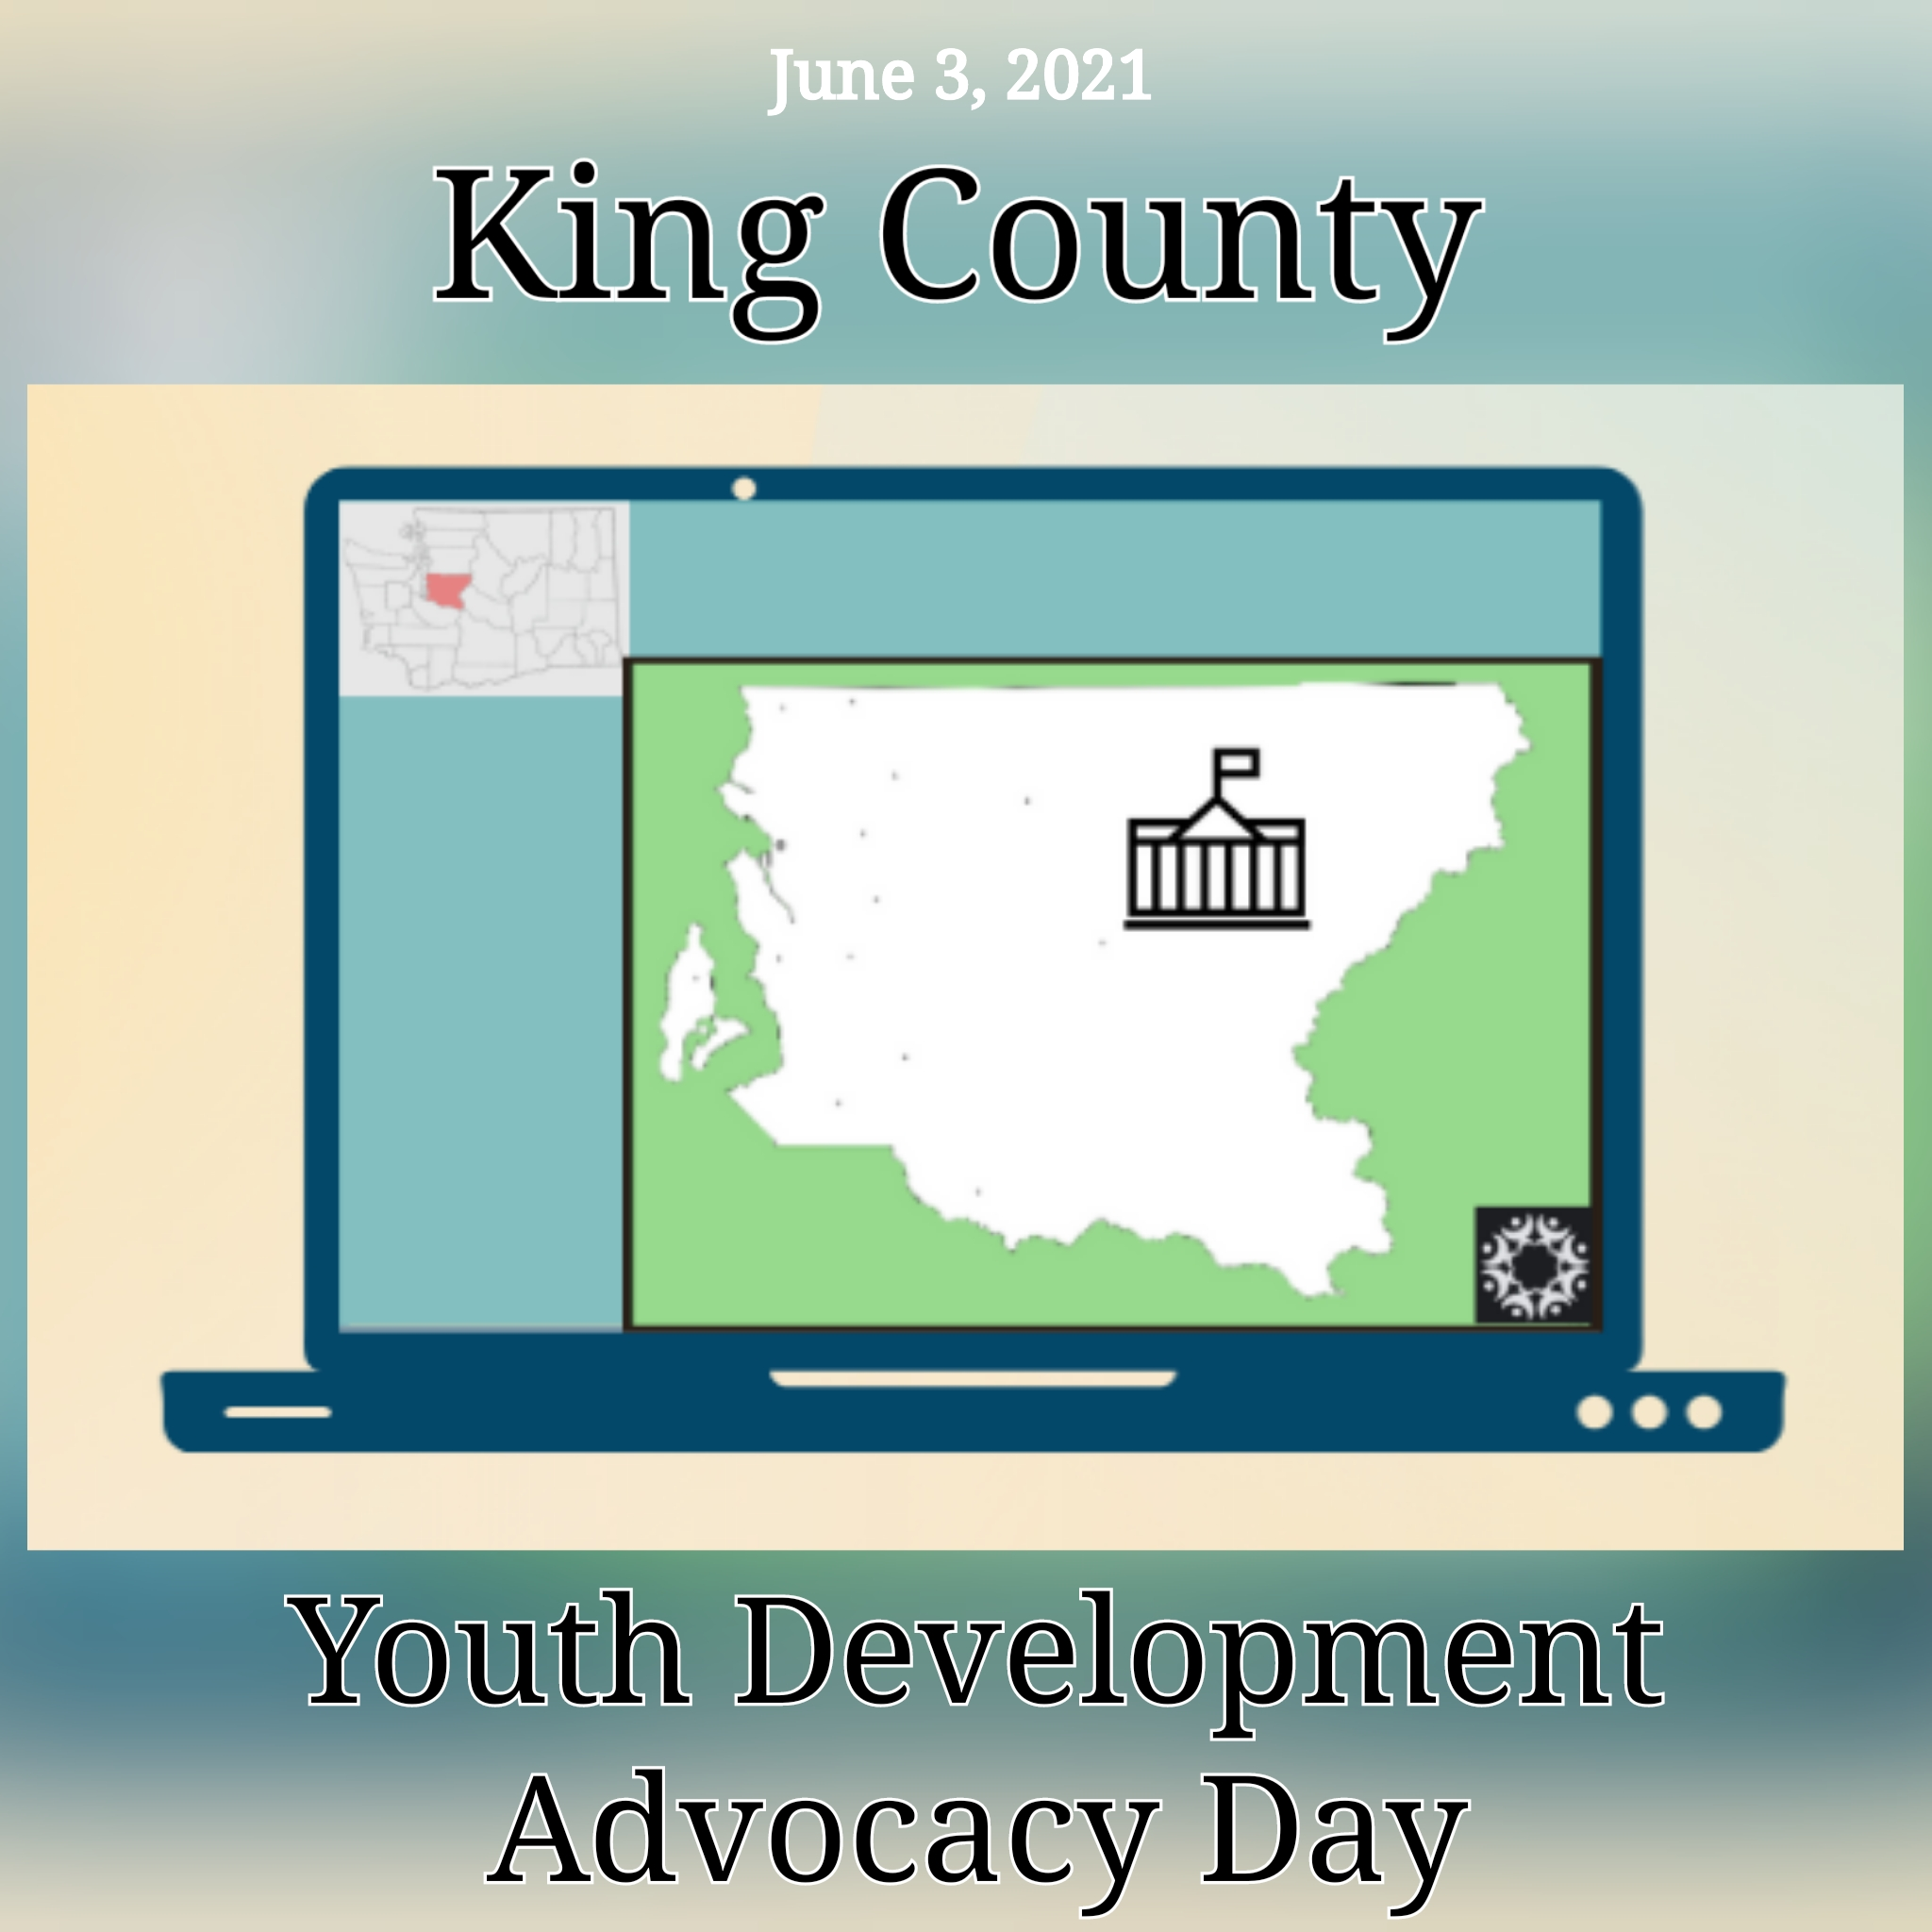 King County Youth Development Advocacy Day (June 3, 2021)